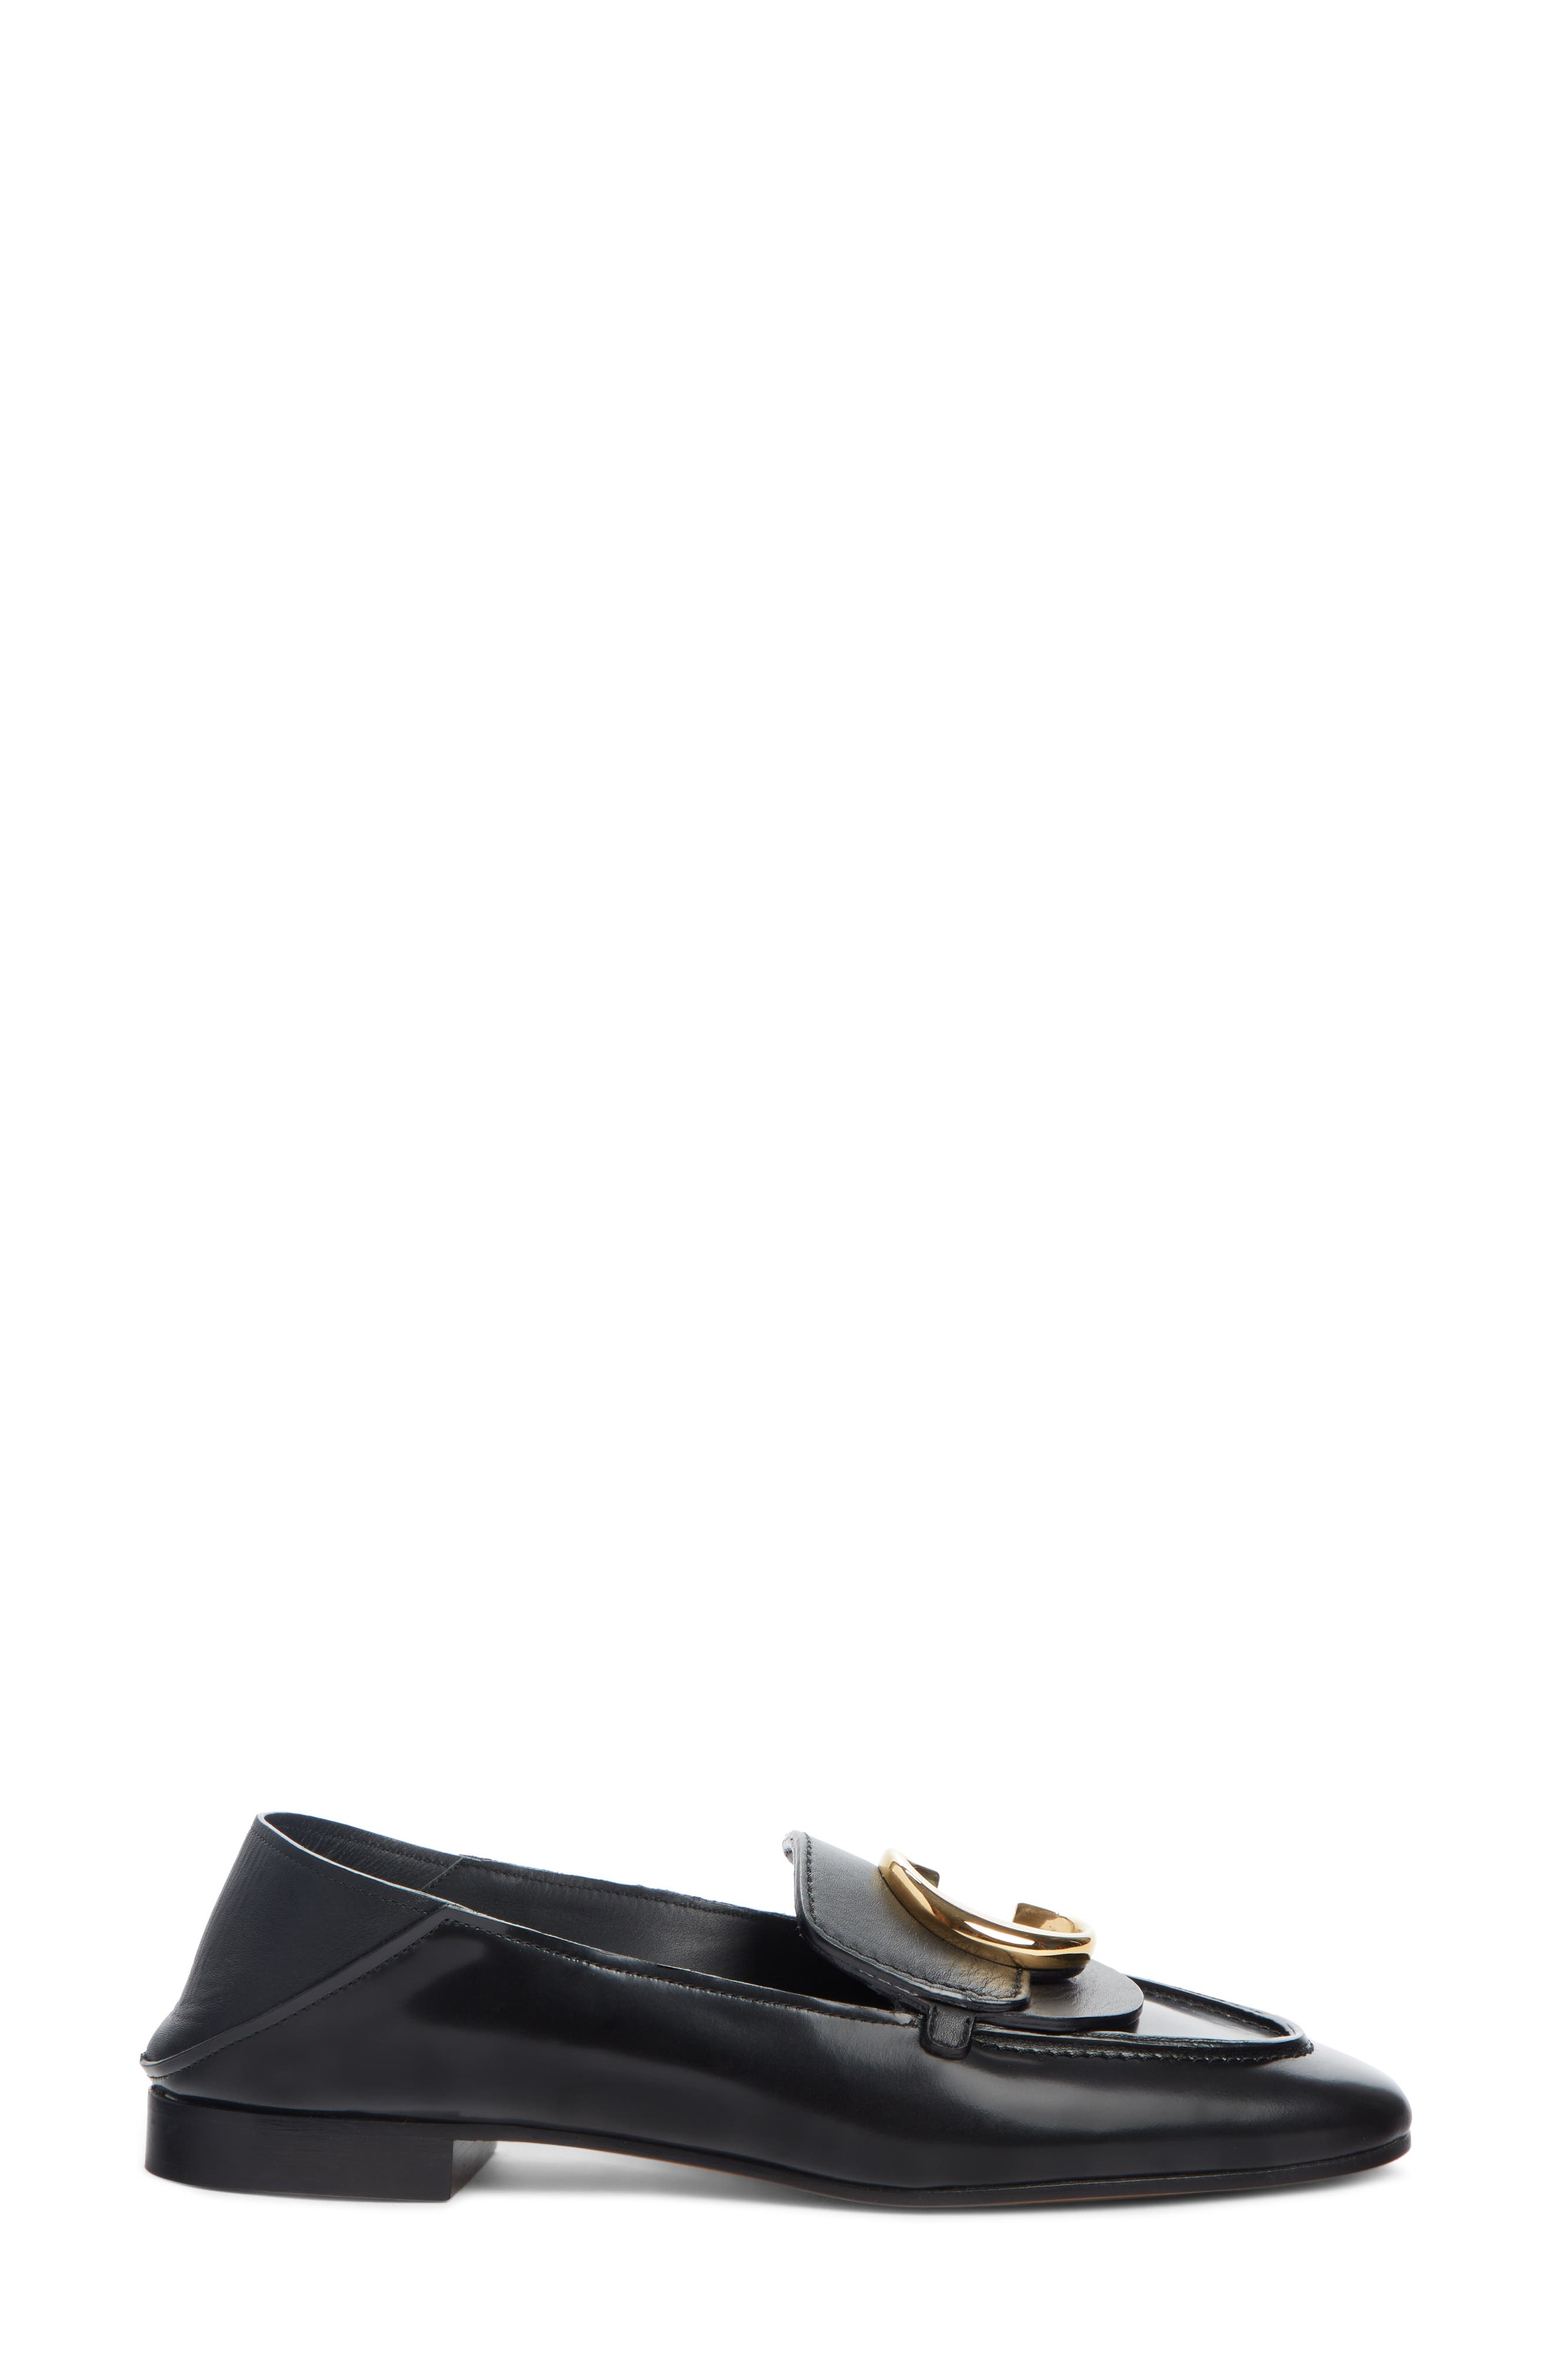 CHLOÉ, Story Convertible Loafer, Alternate thumbnail 3, color, BLACK LEATHER